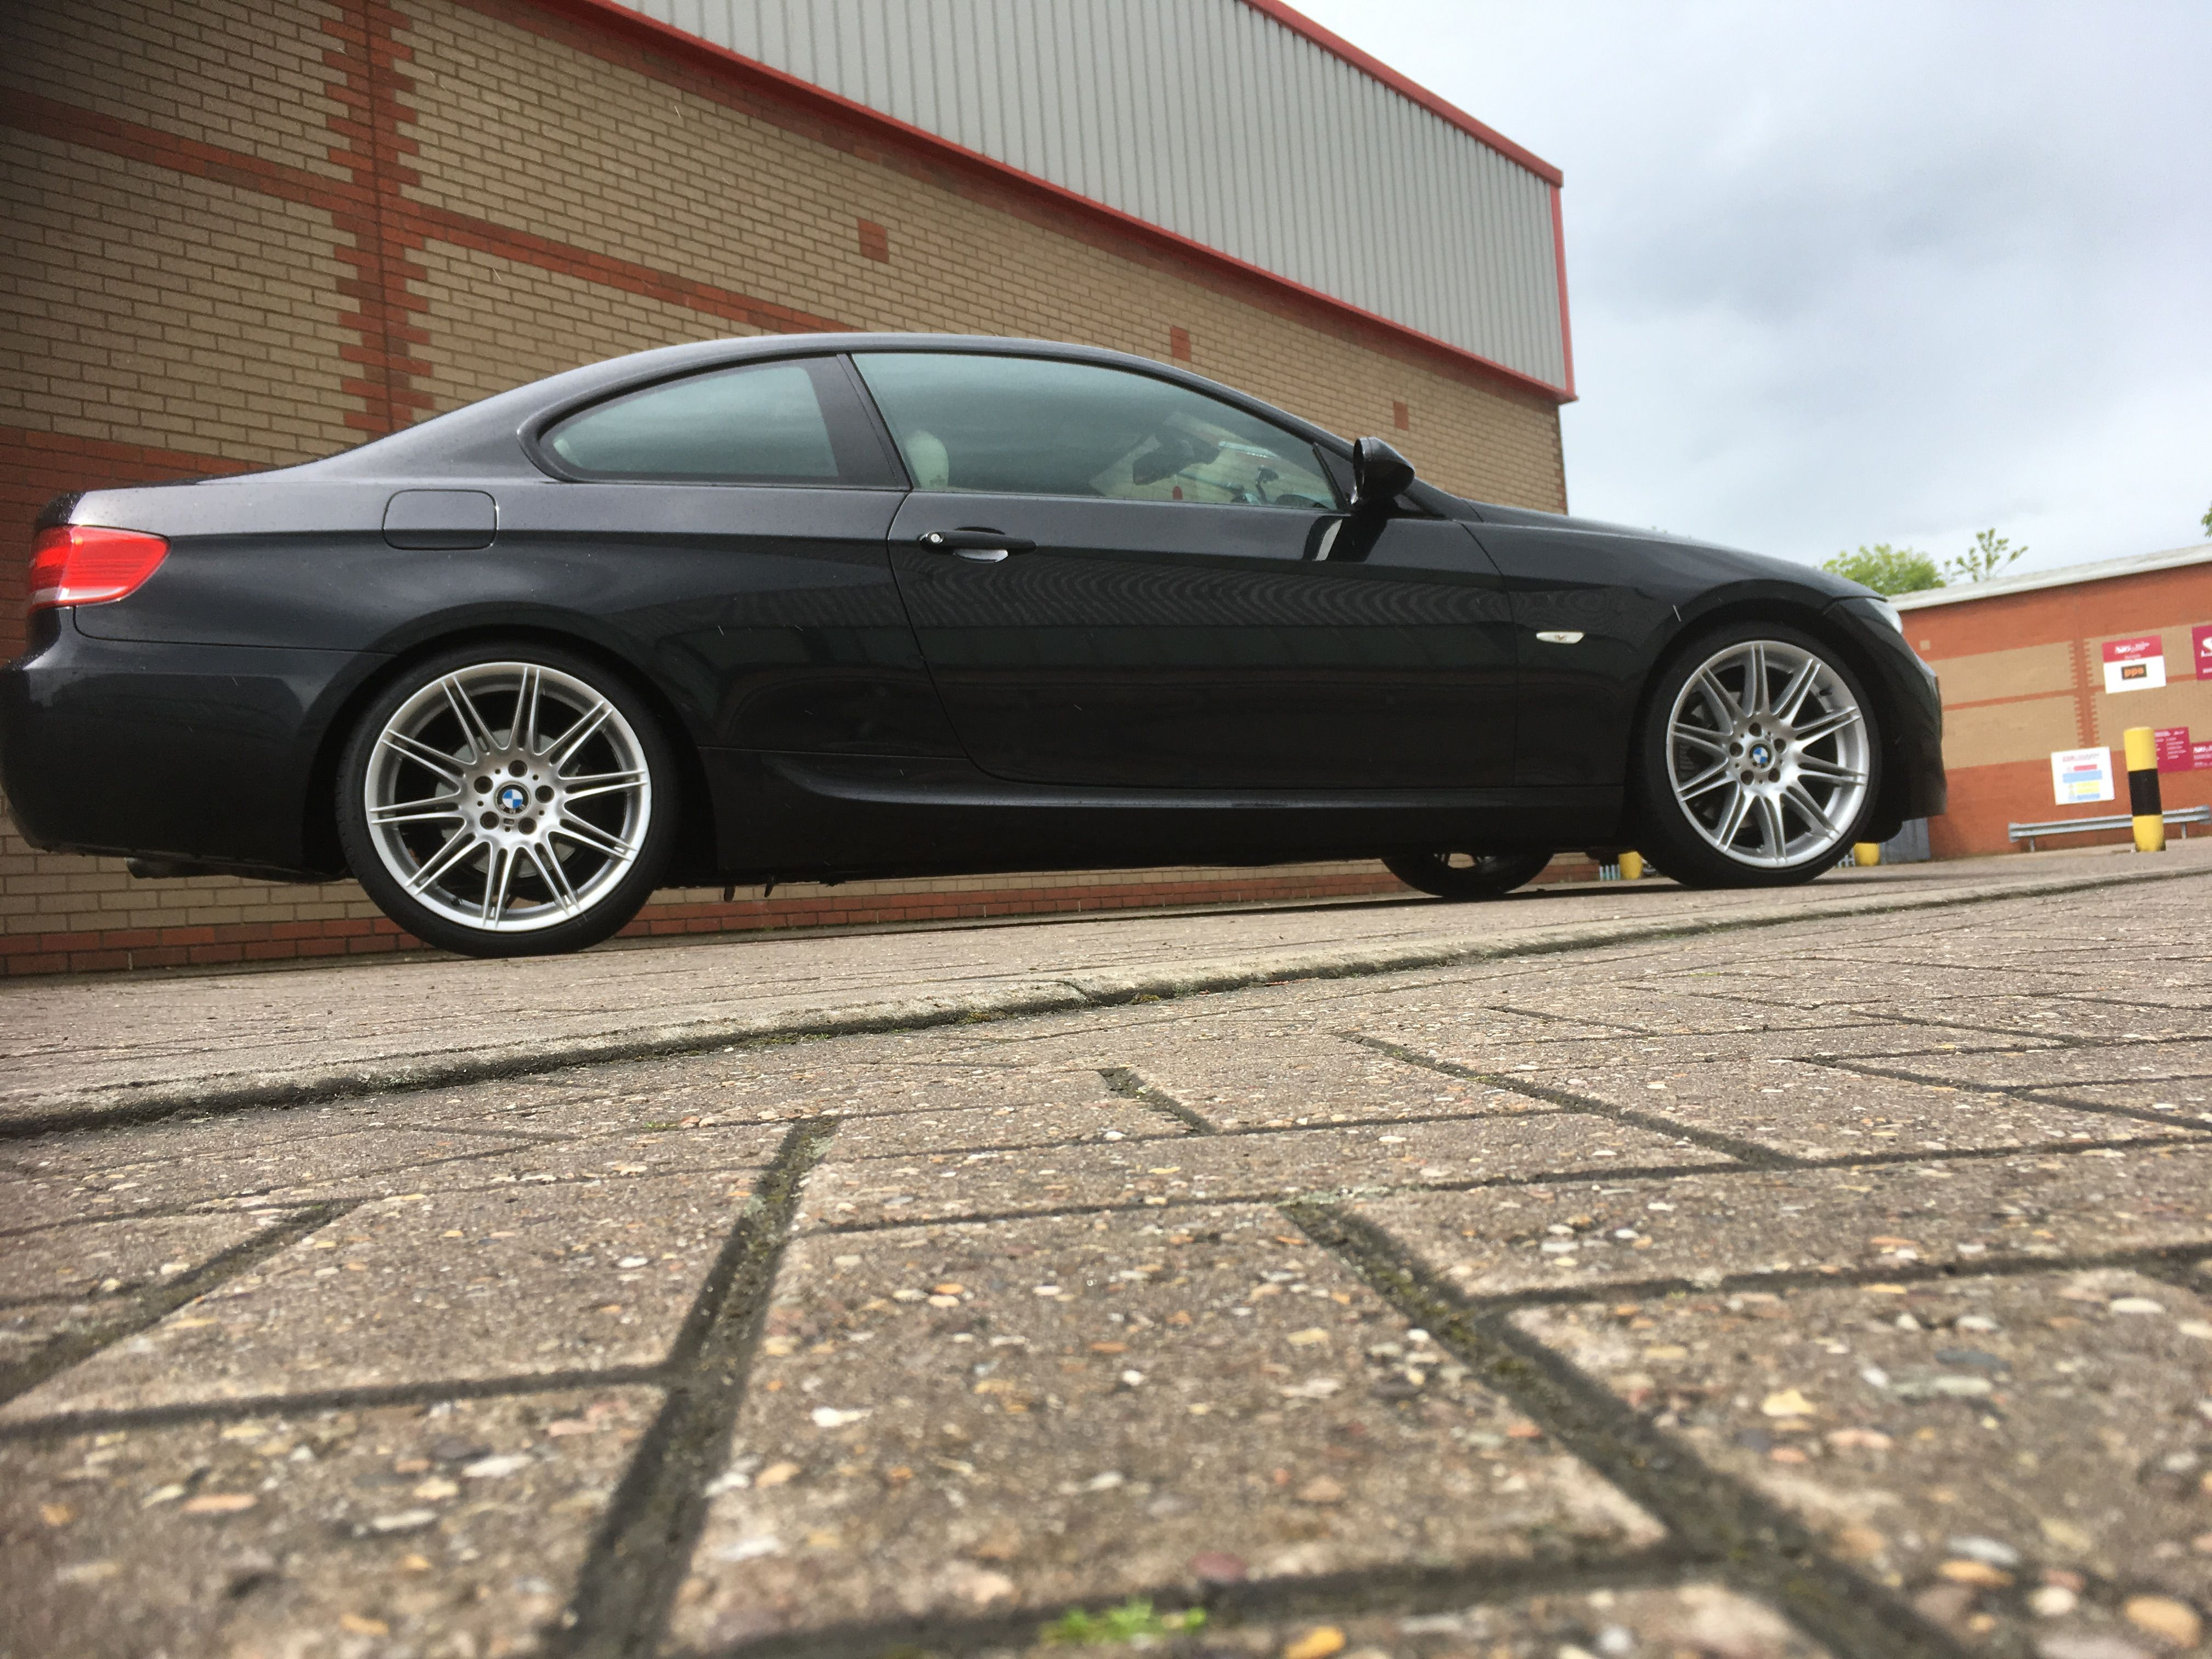 bmw e92 325i coupe mv4 alloys car sapphire black bmw e92 pinterest bmw and cars. Black Bedroom Furniture Sets. Home Design Ideas